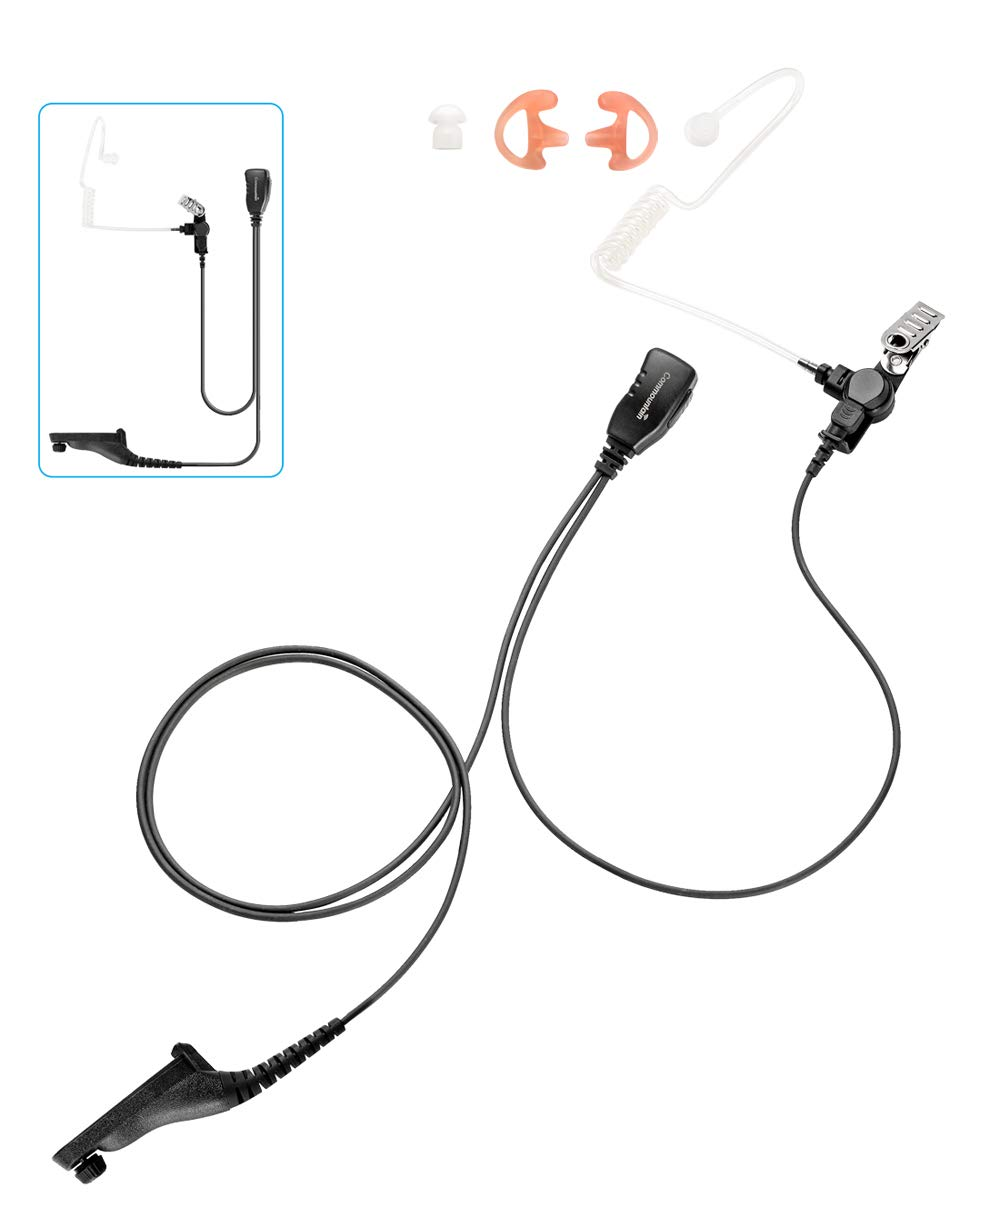 Single Wire Earpiece Headset for Motorola Radio APX6000 APX7000 APX8000 APX4000 APX1000 APX900 XPR6000 XPR7000 Series, Acoustic Tube Style, Kevlar Reinforced Cable, Long Life Design, Compact PTT/Mic by commountain